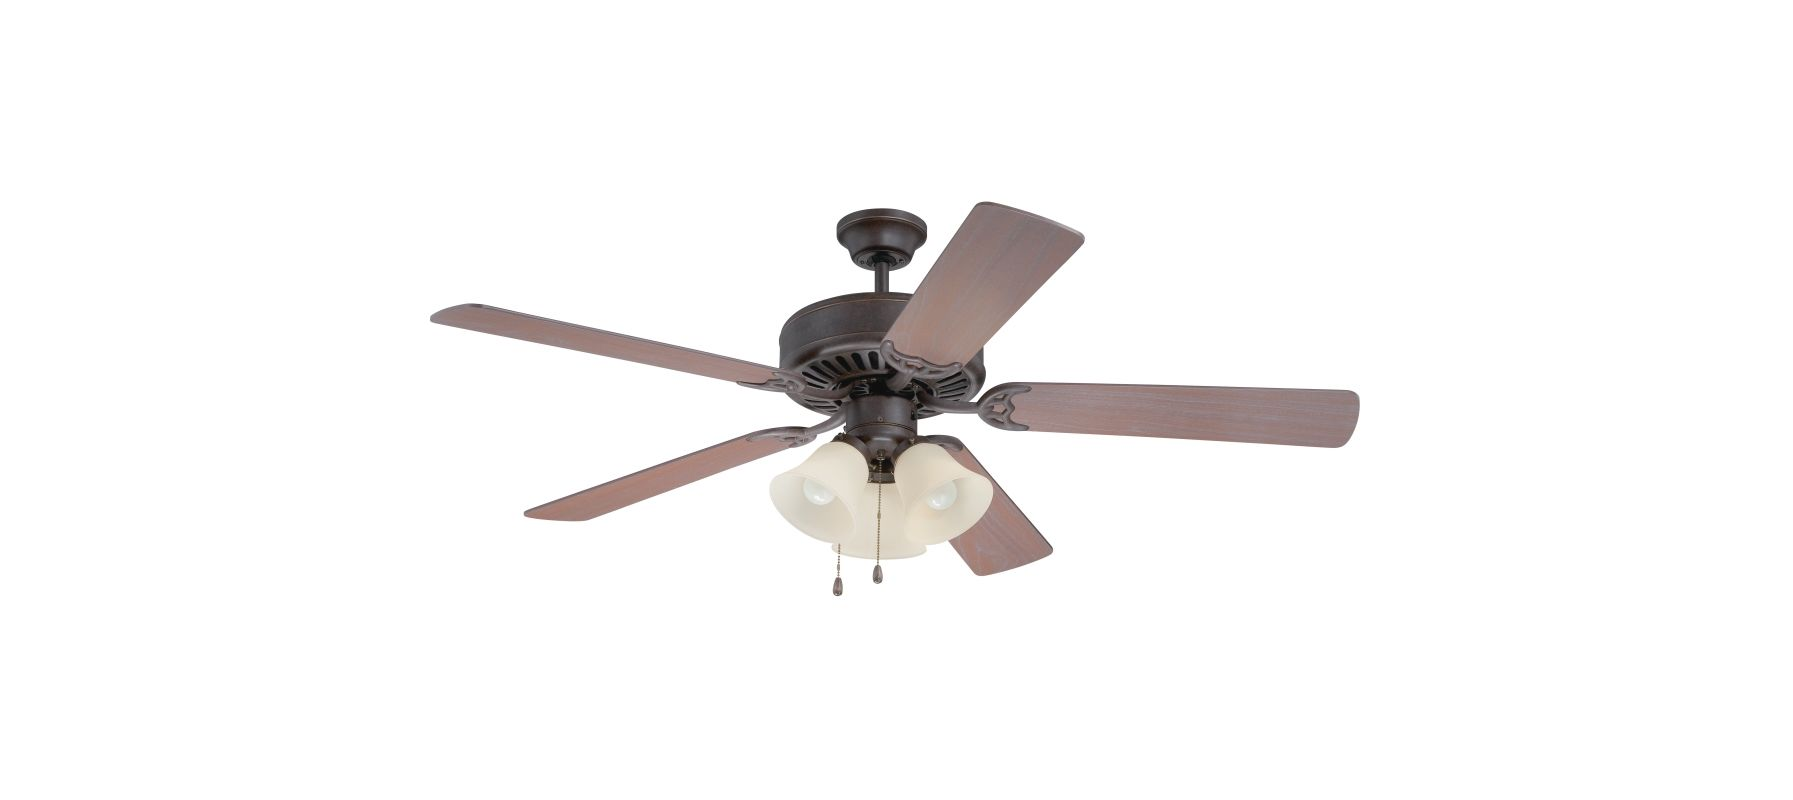 "Craftmade K11117 Pro Builder 206 52"" 5 Blade Indoor Ceiling Fan with"